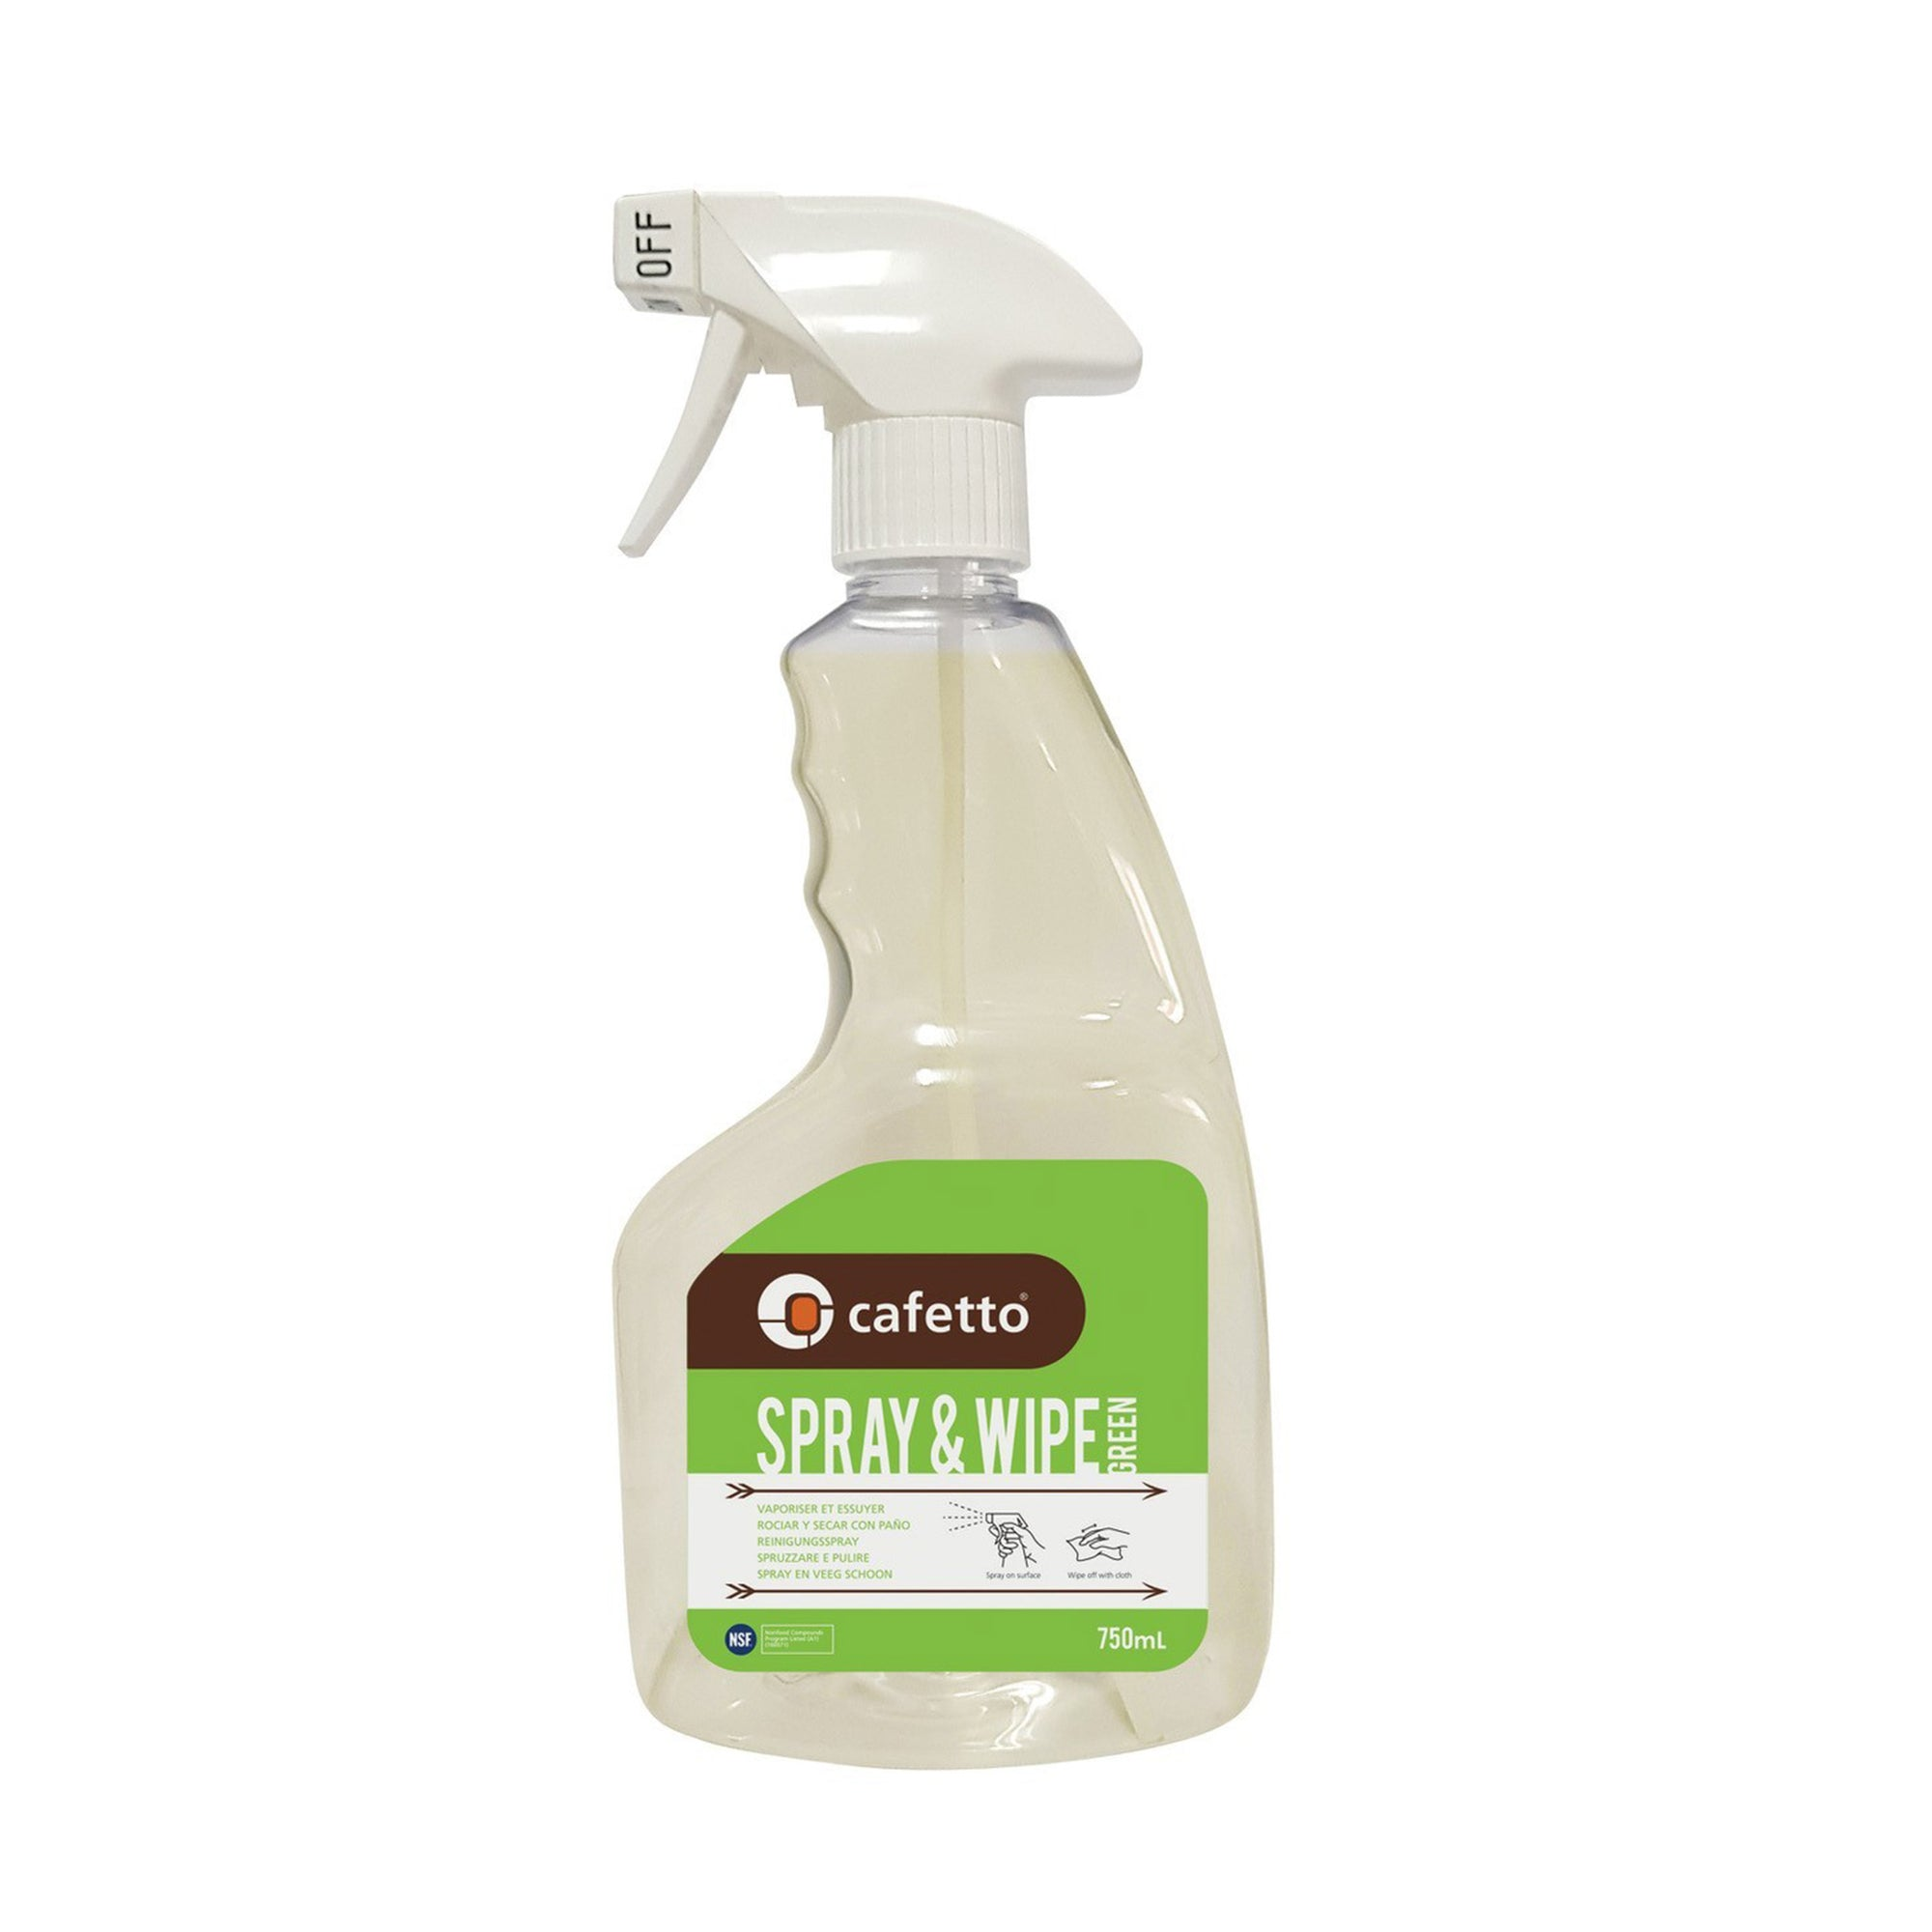 Spray & Wipe Organic 750ml - Cafetto - Espresso Gear